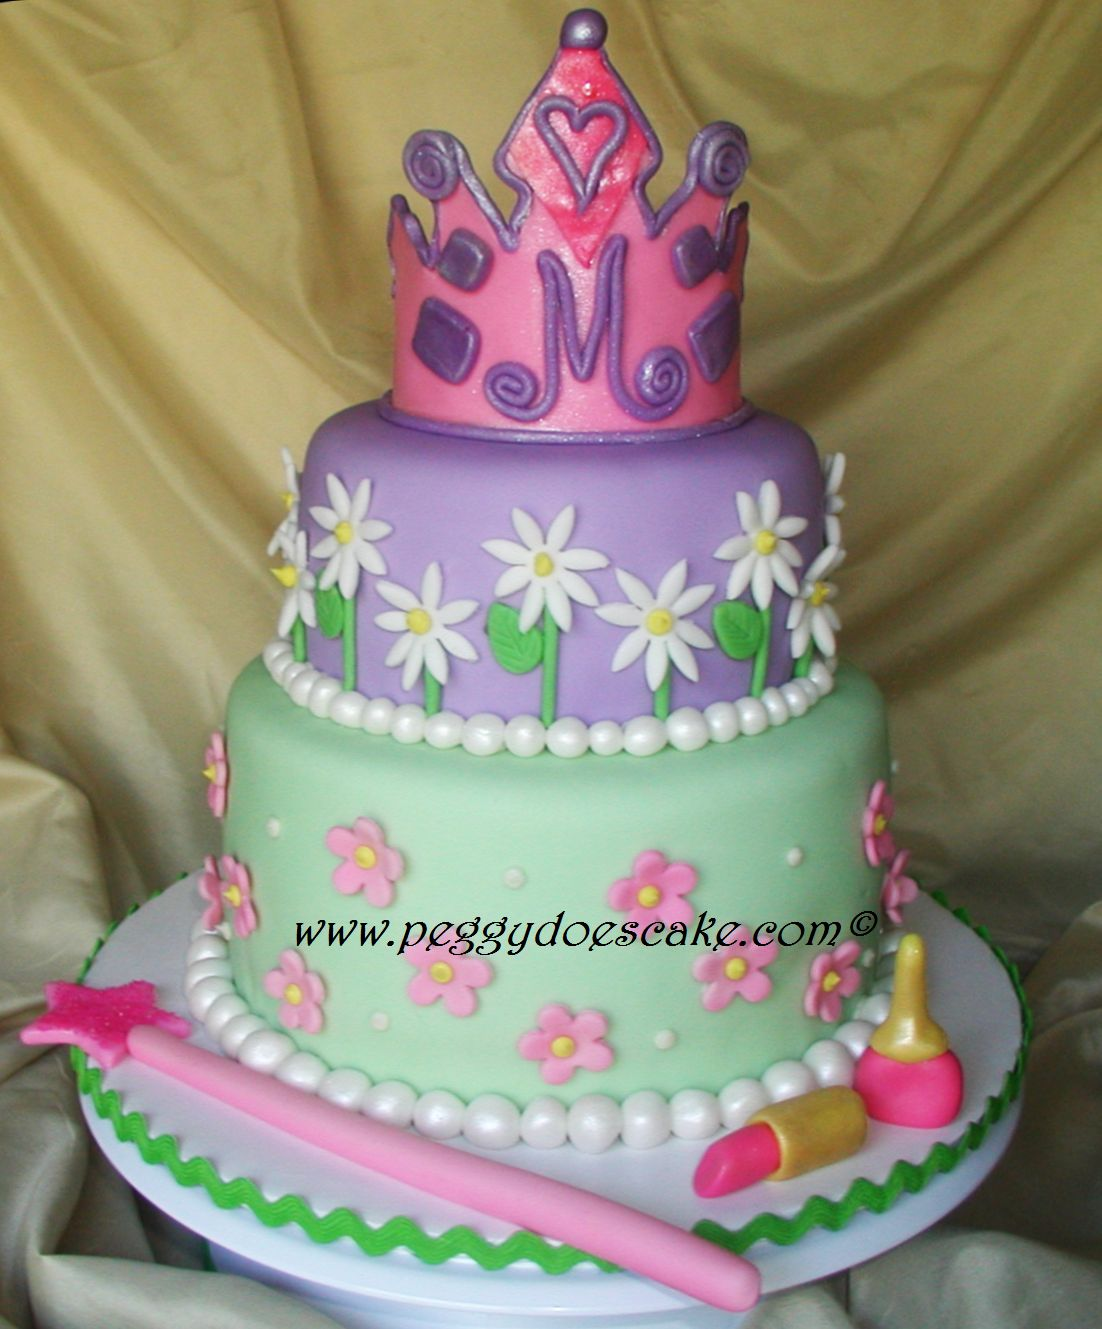 Peggy Does Cake Megs Princess Cake For Her Birthday Tea Party